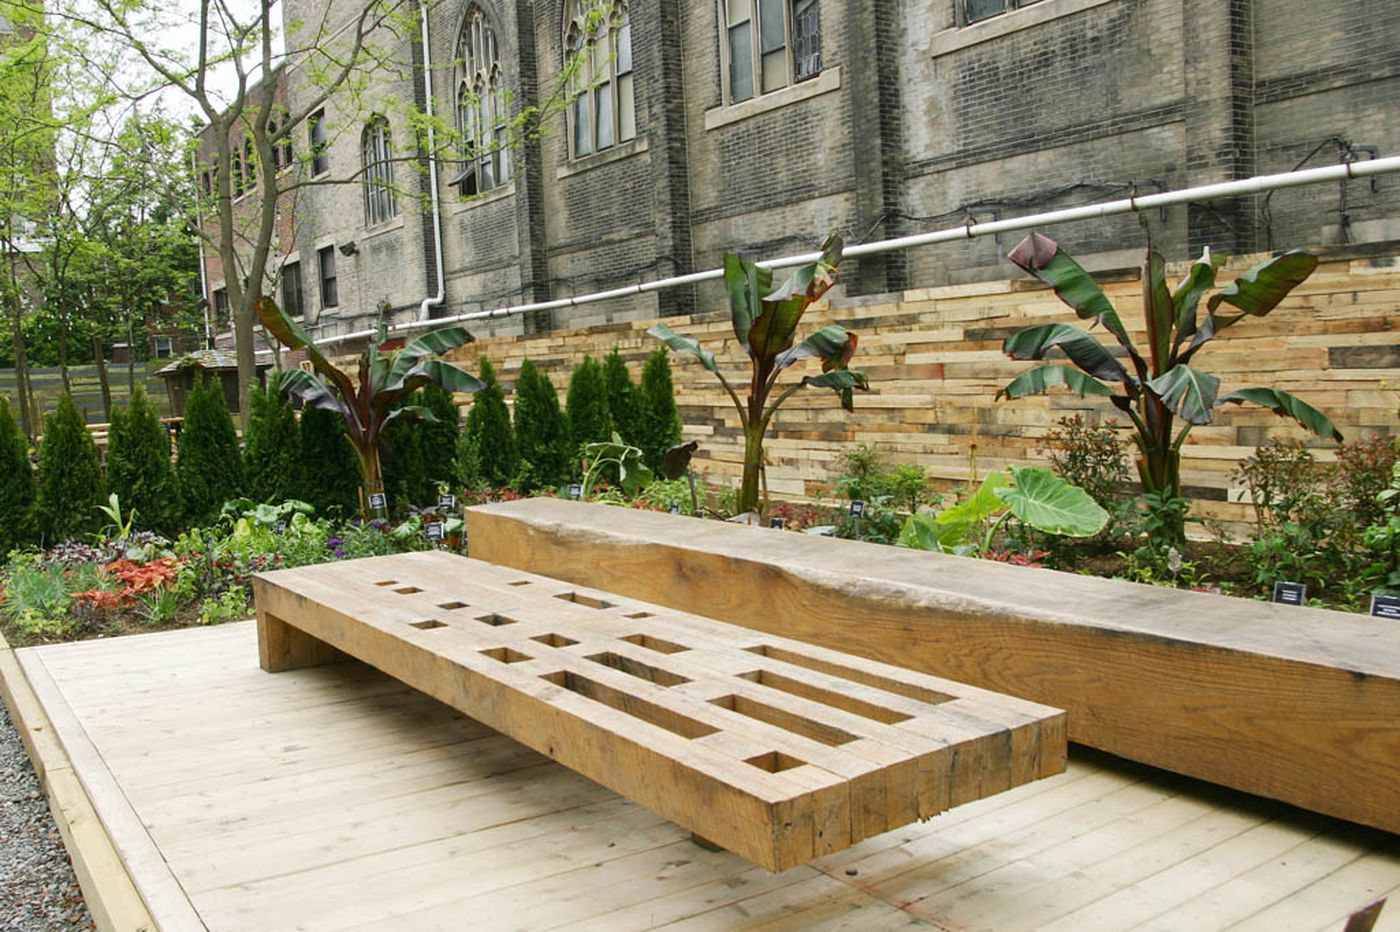 Pop-up garden opens on Avenue of the Arts